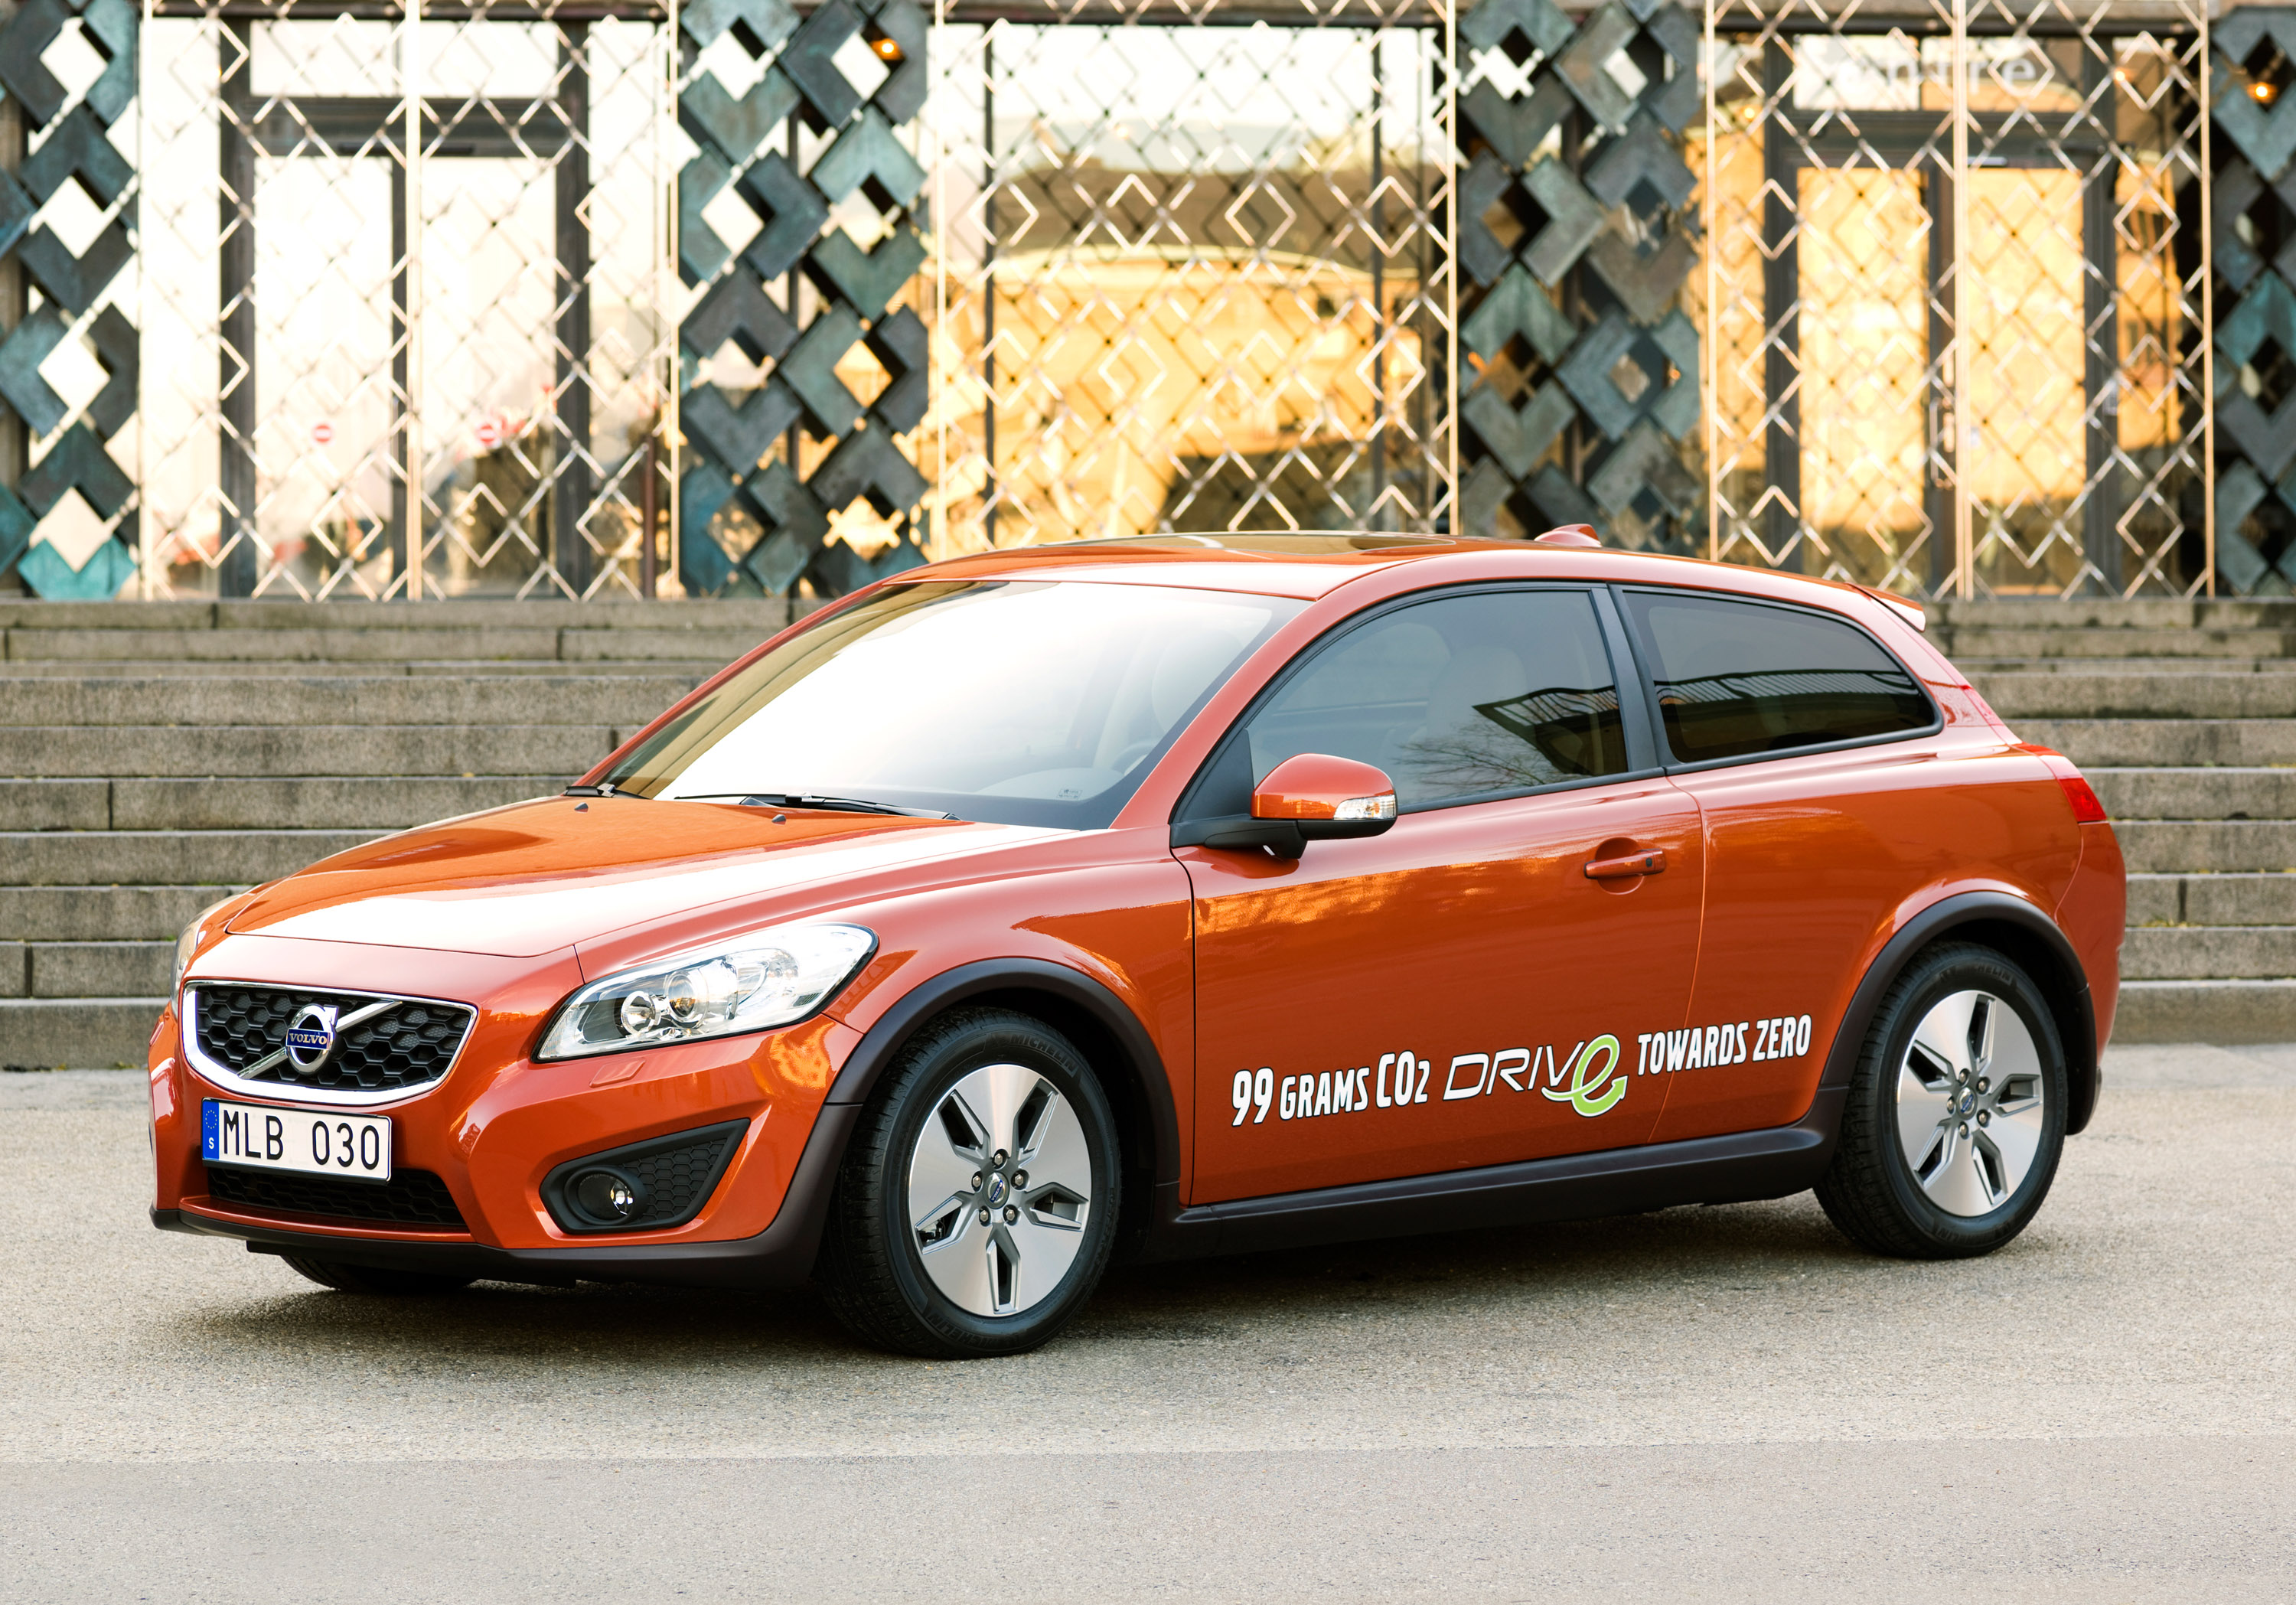 2010 Volvo C30 1 6d Drive With Only 99 G Km Harmful Emissions